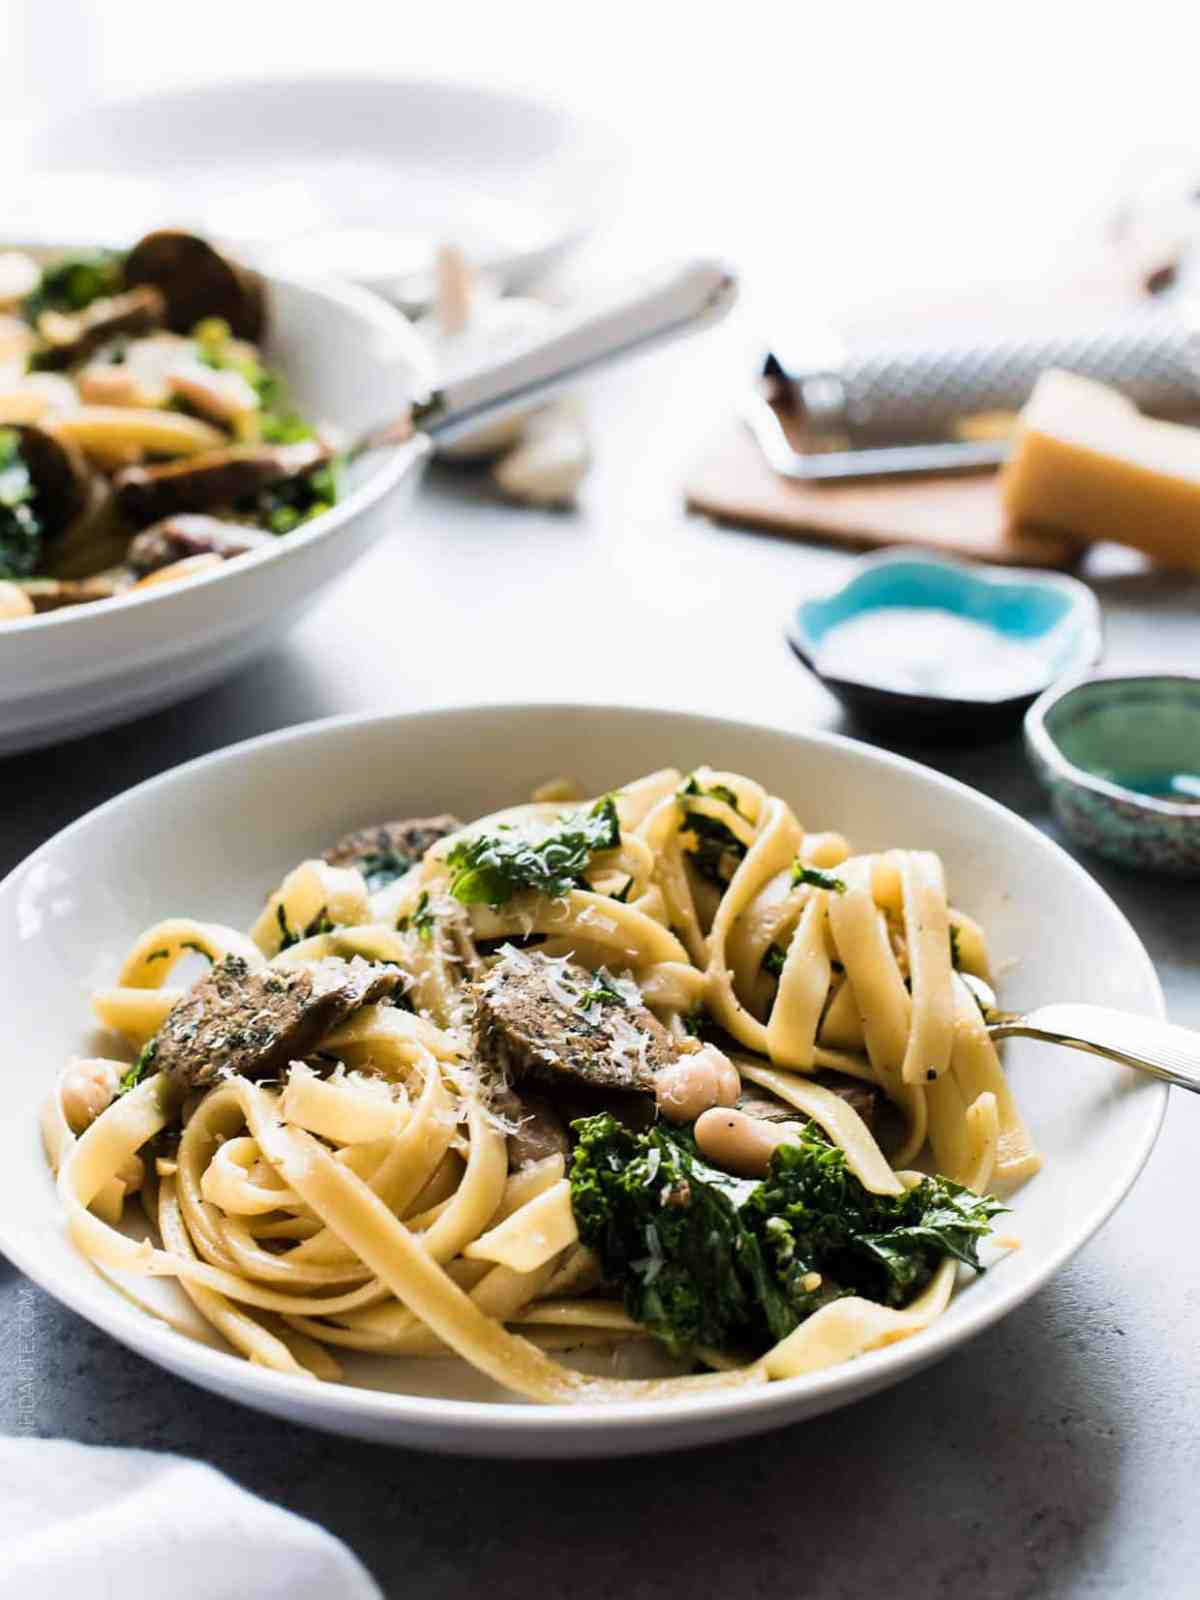 Fettuccine with Chicken Sausage, Kale and Cannellini Beans in a white bowl with the pasta twirled around a fork.